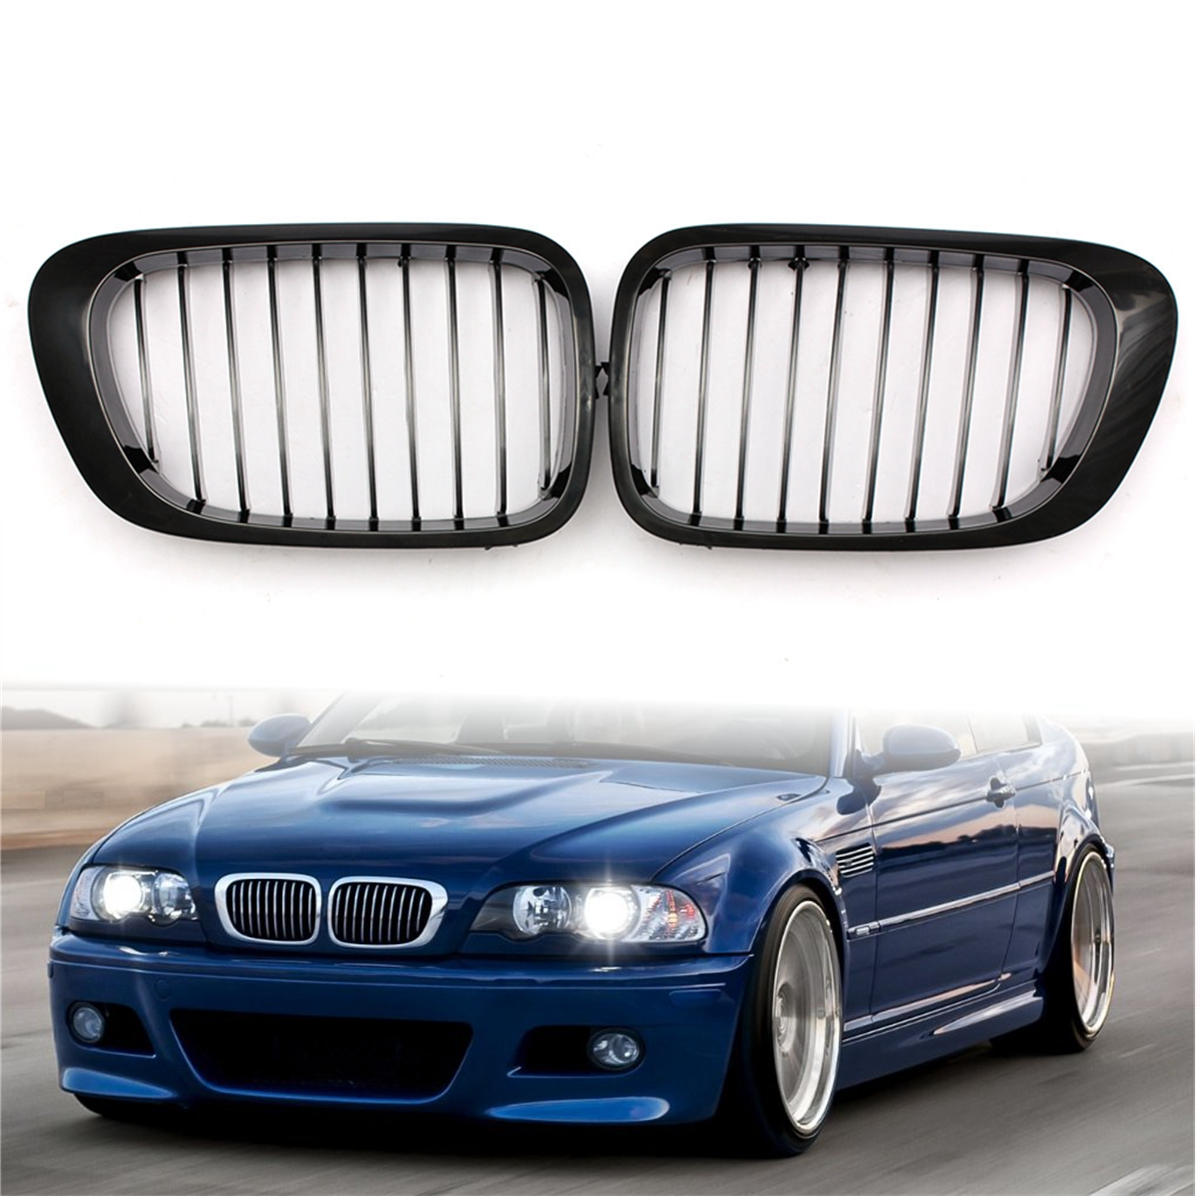 Pair Gloss Black Front Kidney Grill Grille for BMW E46 3-Series 325Ci 330Ci 323Ci 328Ci Car Racing Grills possbay matte black front center grille grilles for bmw 3 series e46 325ci 330cd 330ci m3 csl cabrio cabrio 2003 2006 facelift